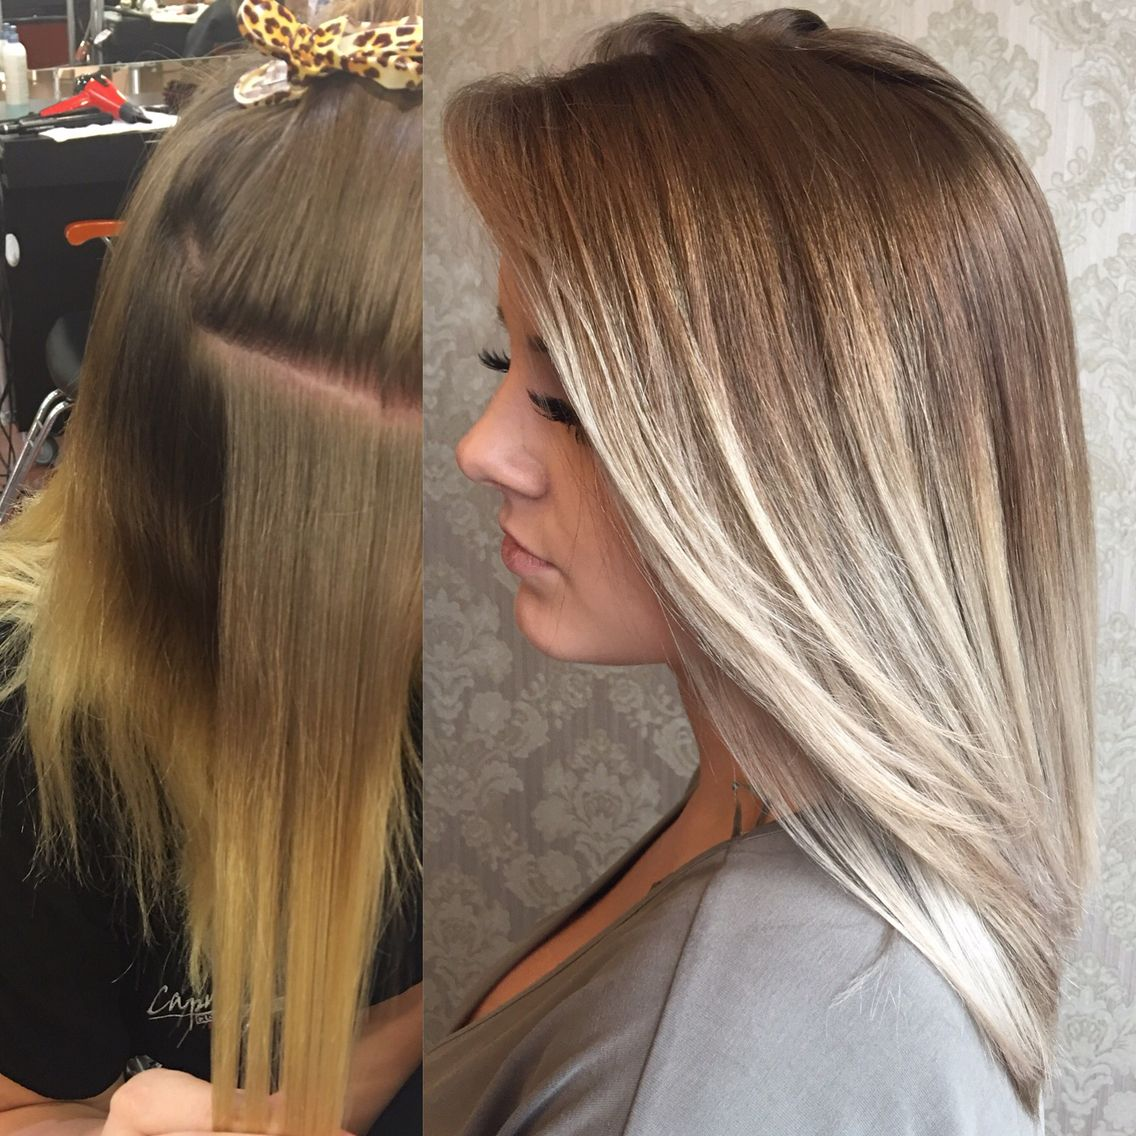 Awesome Before After Ash Blonde, Light Blonde, Dark Roots, Platinum Blonde, Hair  Color Makeover, Balayage Highlights, Ombre, Hair Color Makeover, Hair Color  ...